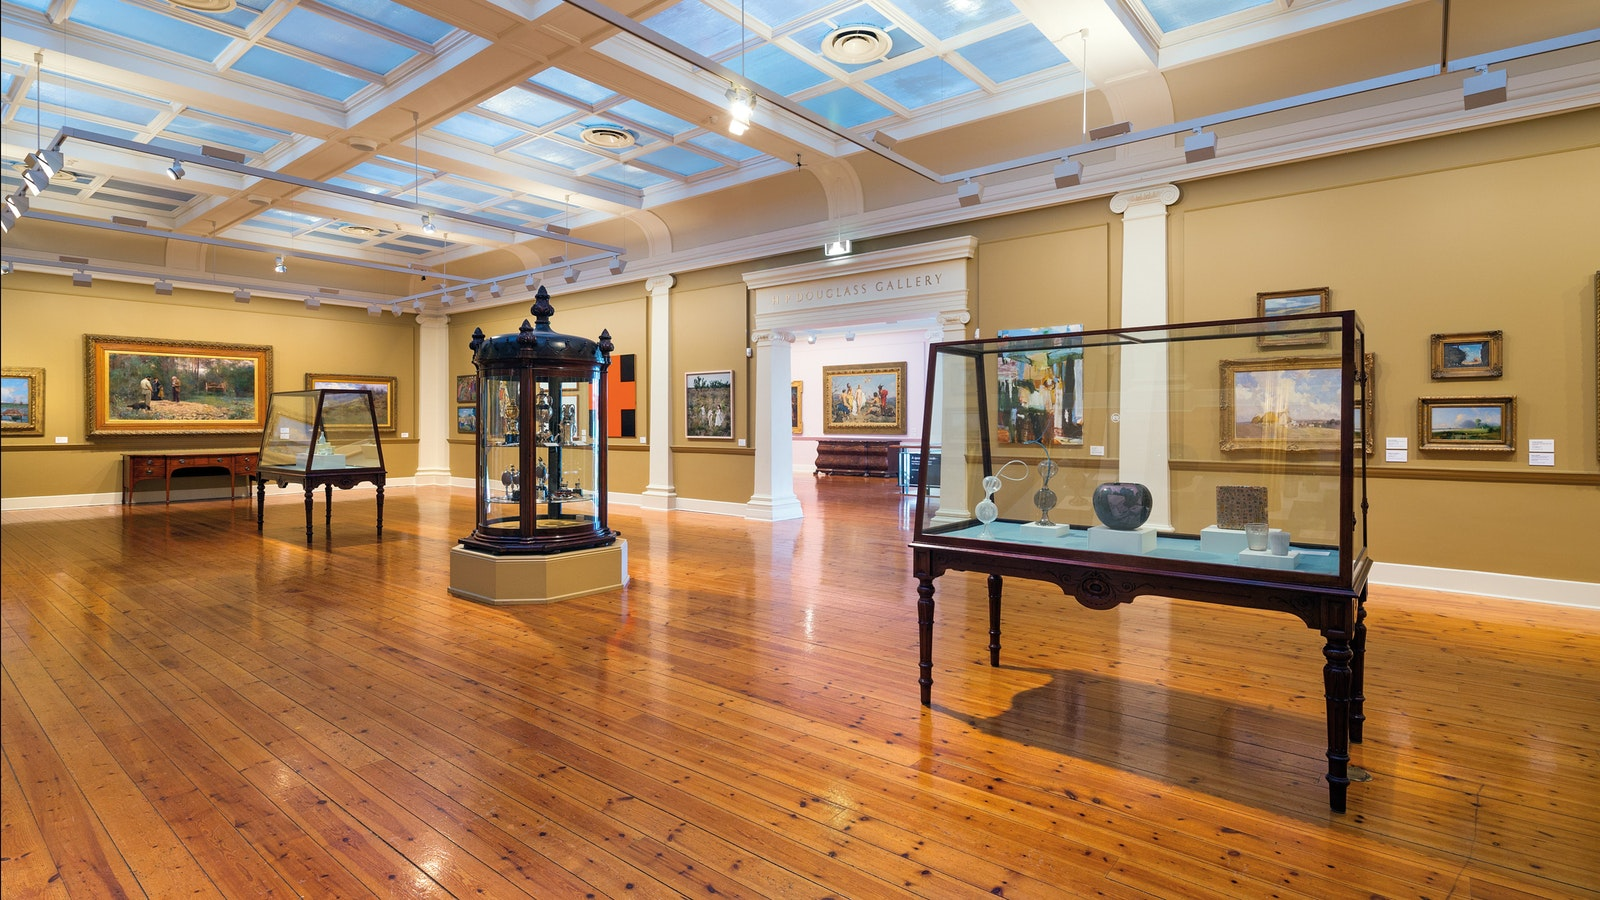 Geelong Gallery permanent collection